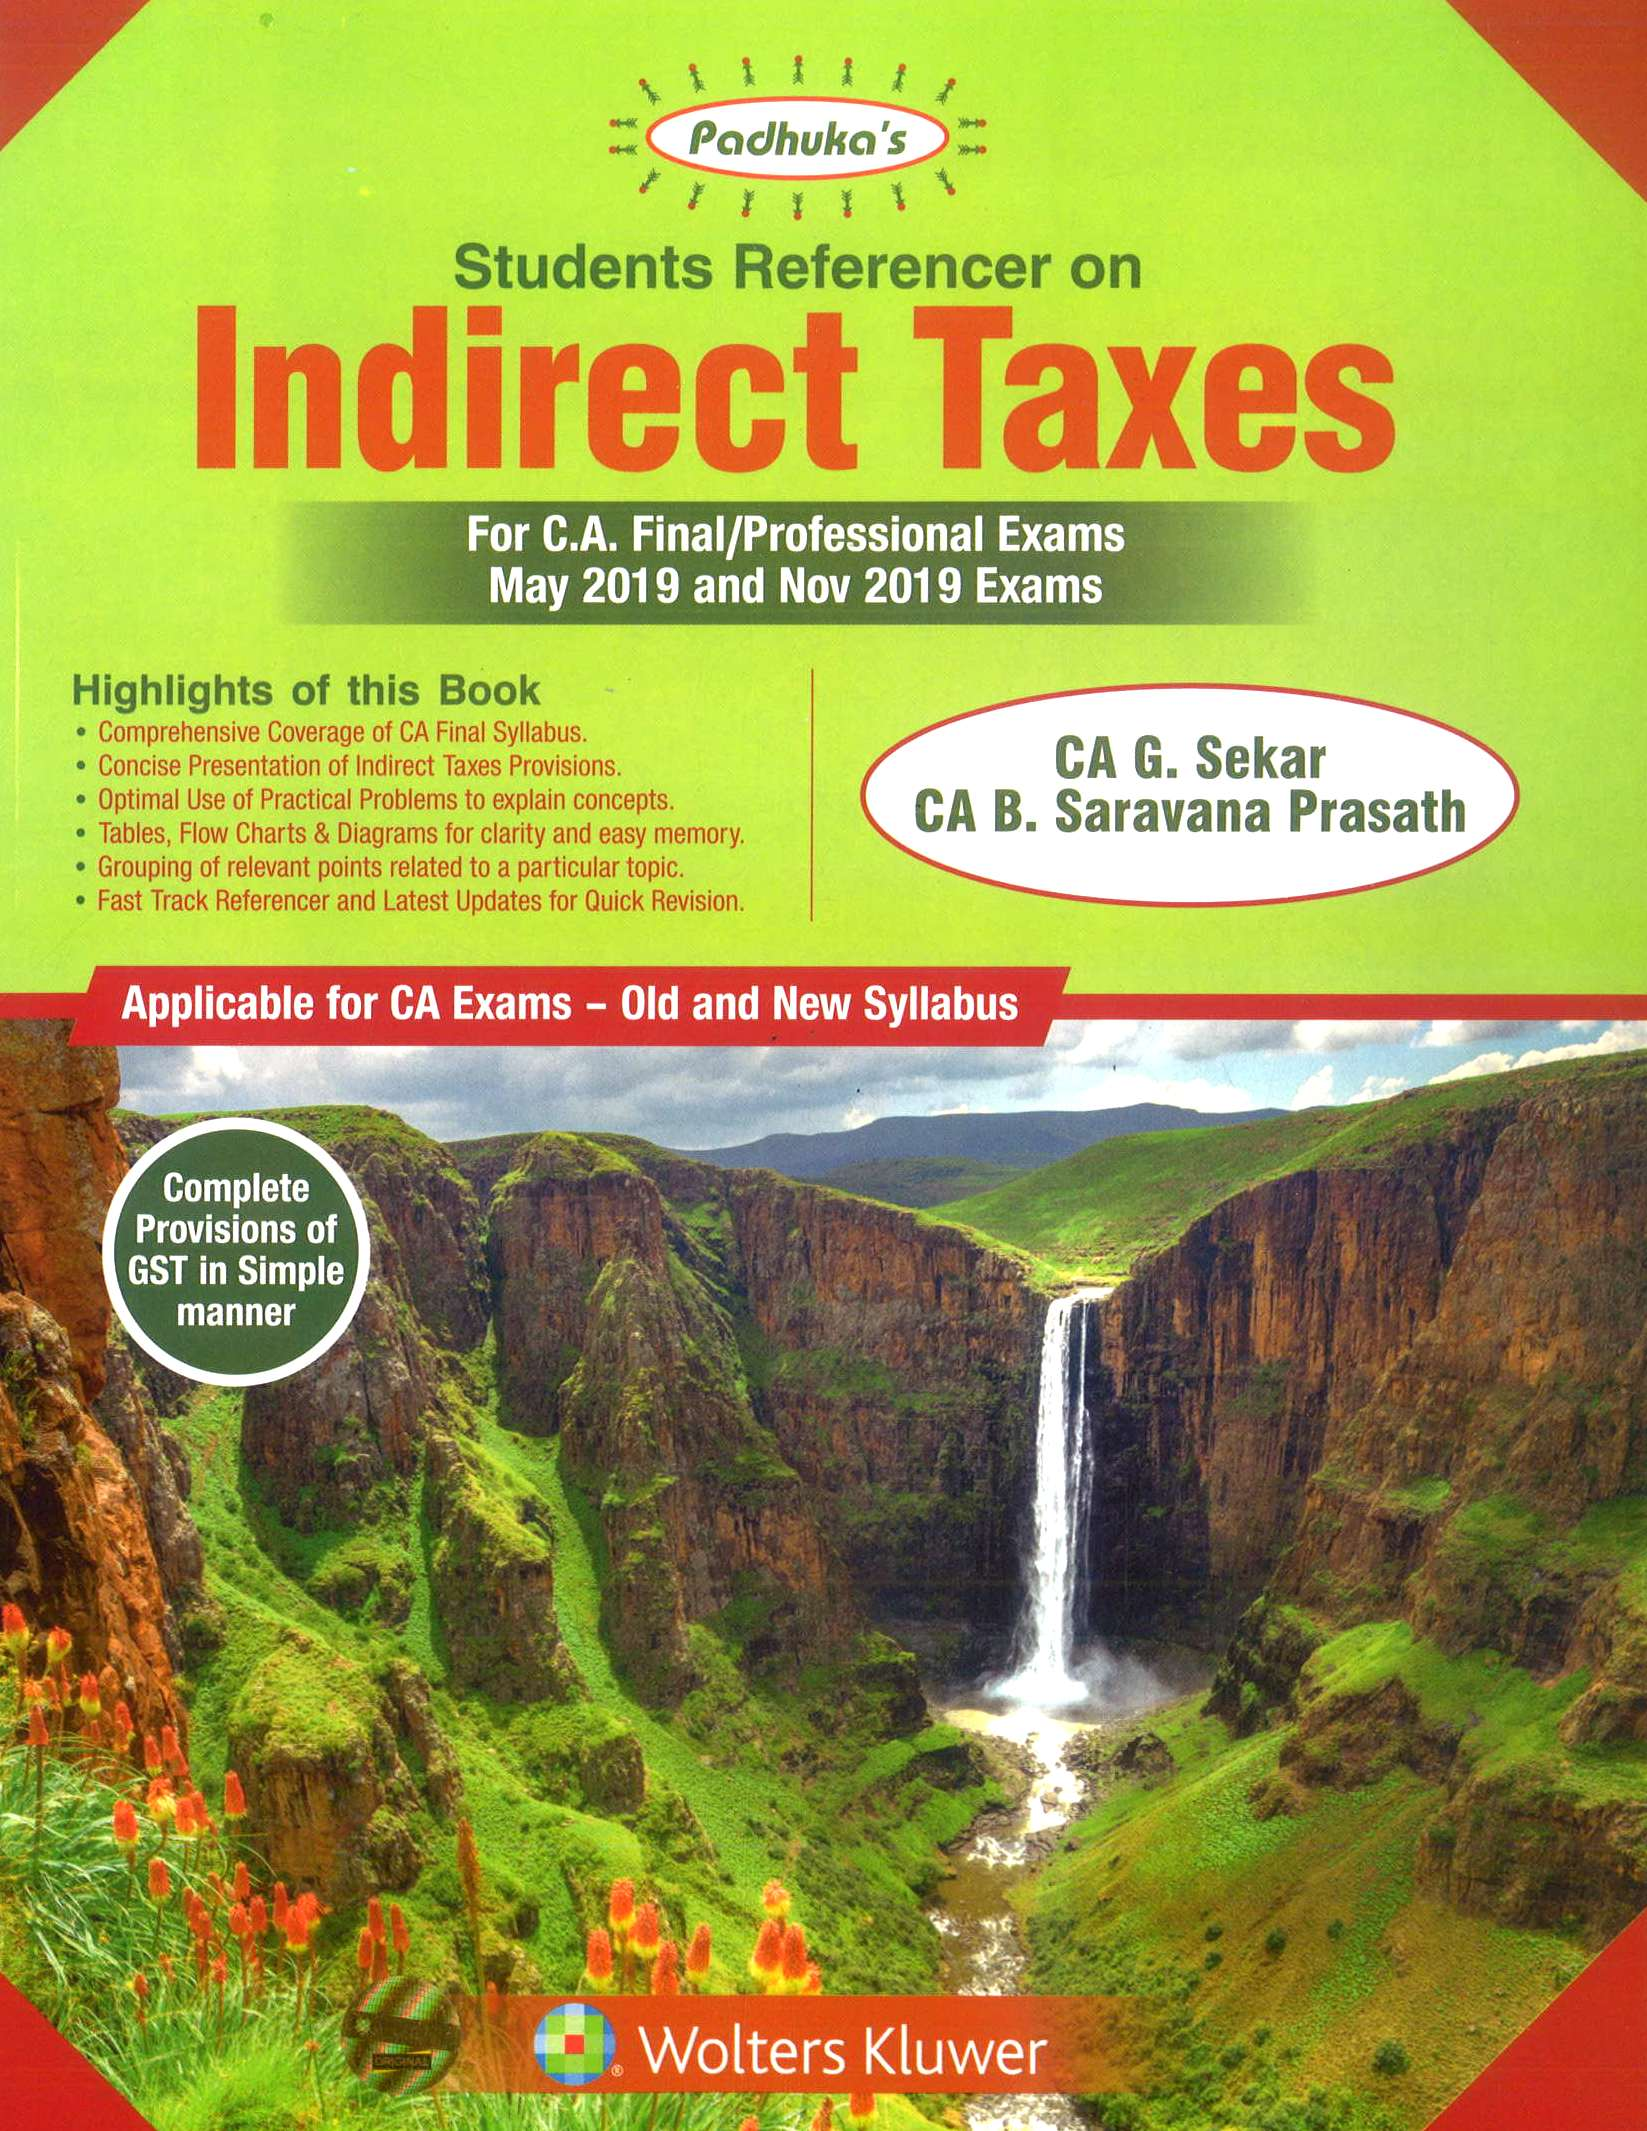 Padhuka Students' Reference on Indirect Taxes for CA Final (old and New Syllabus) for May 2019 and Nov 2019 exam by CA G. Sekar and CA. B Saravana Prasath (Wolters Kluwer Publishing) 15th Edition Dec 2018